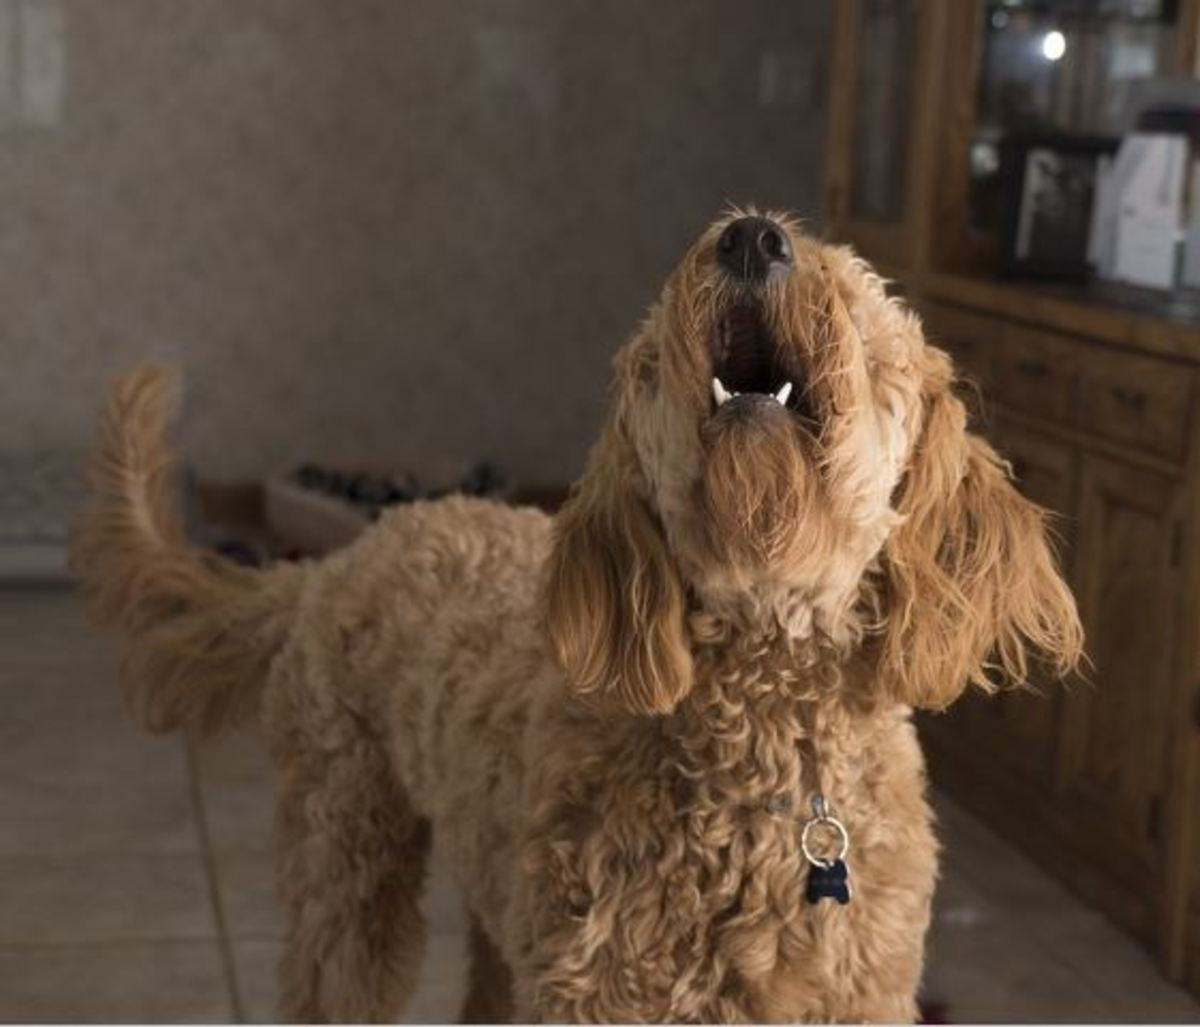 Barking at the TV may be your dog's way of responding to a trigger on screen.